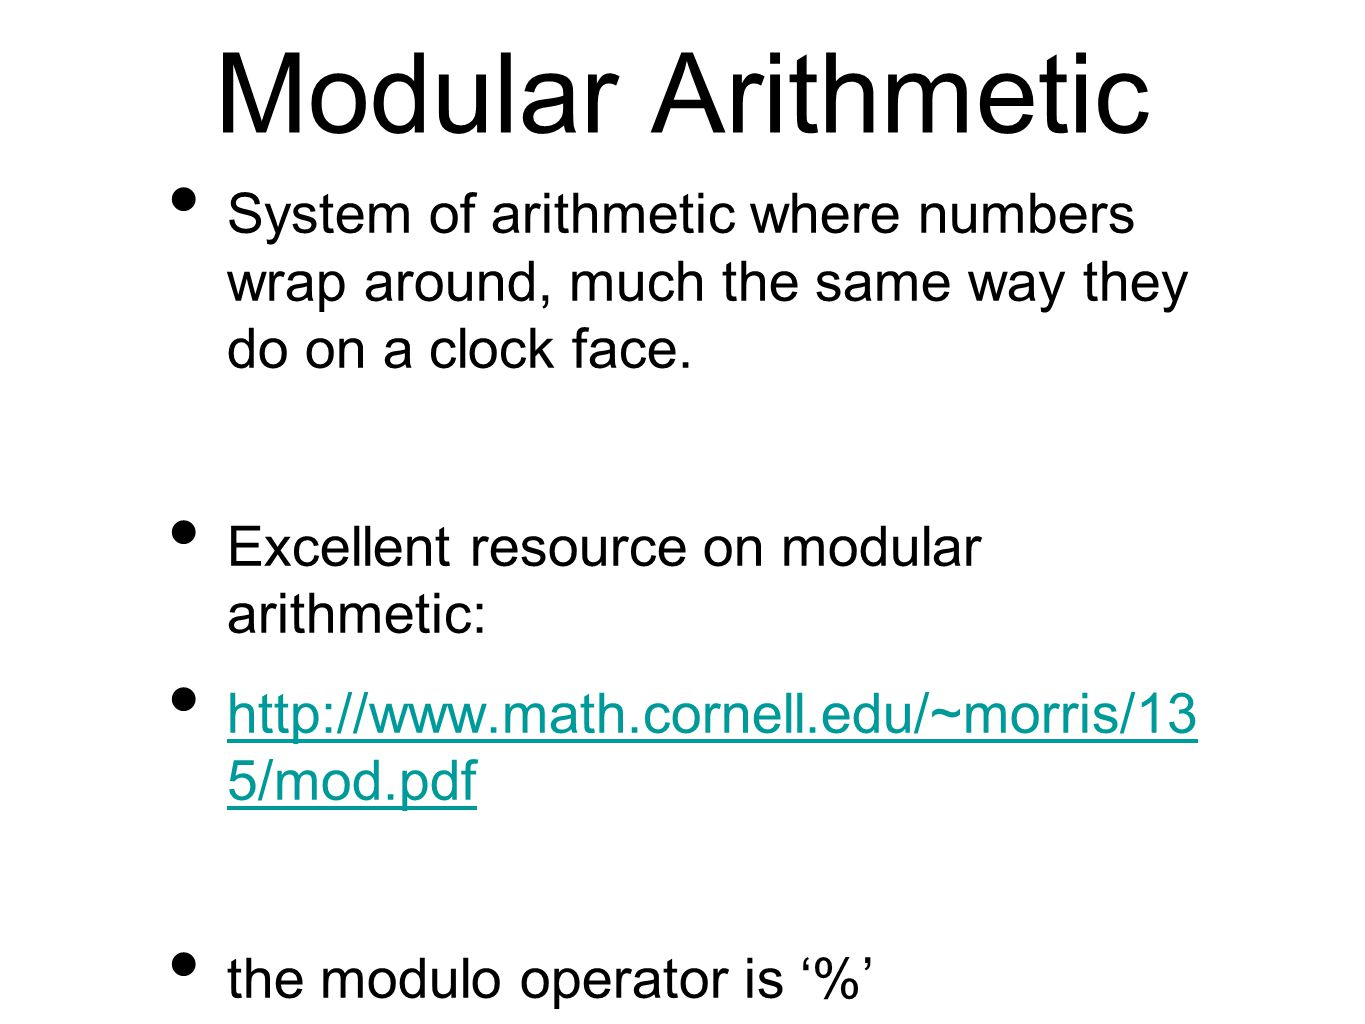 Modular Arithmetic System of arithmetic where numbers wrap around, much the same way they do on a clock face.